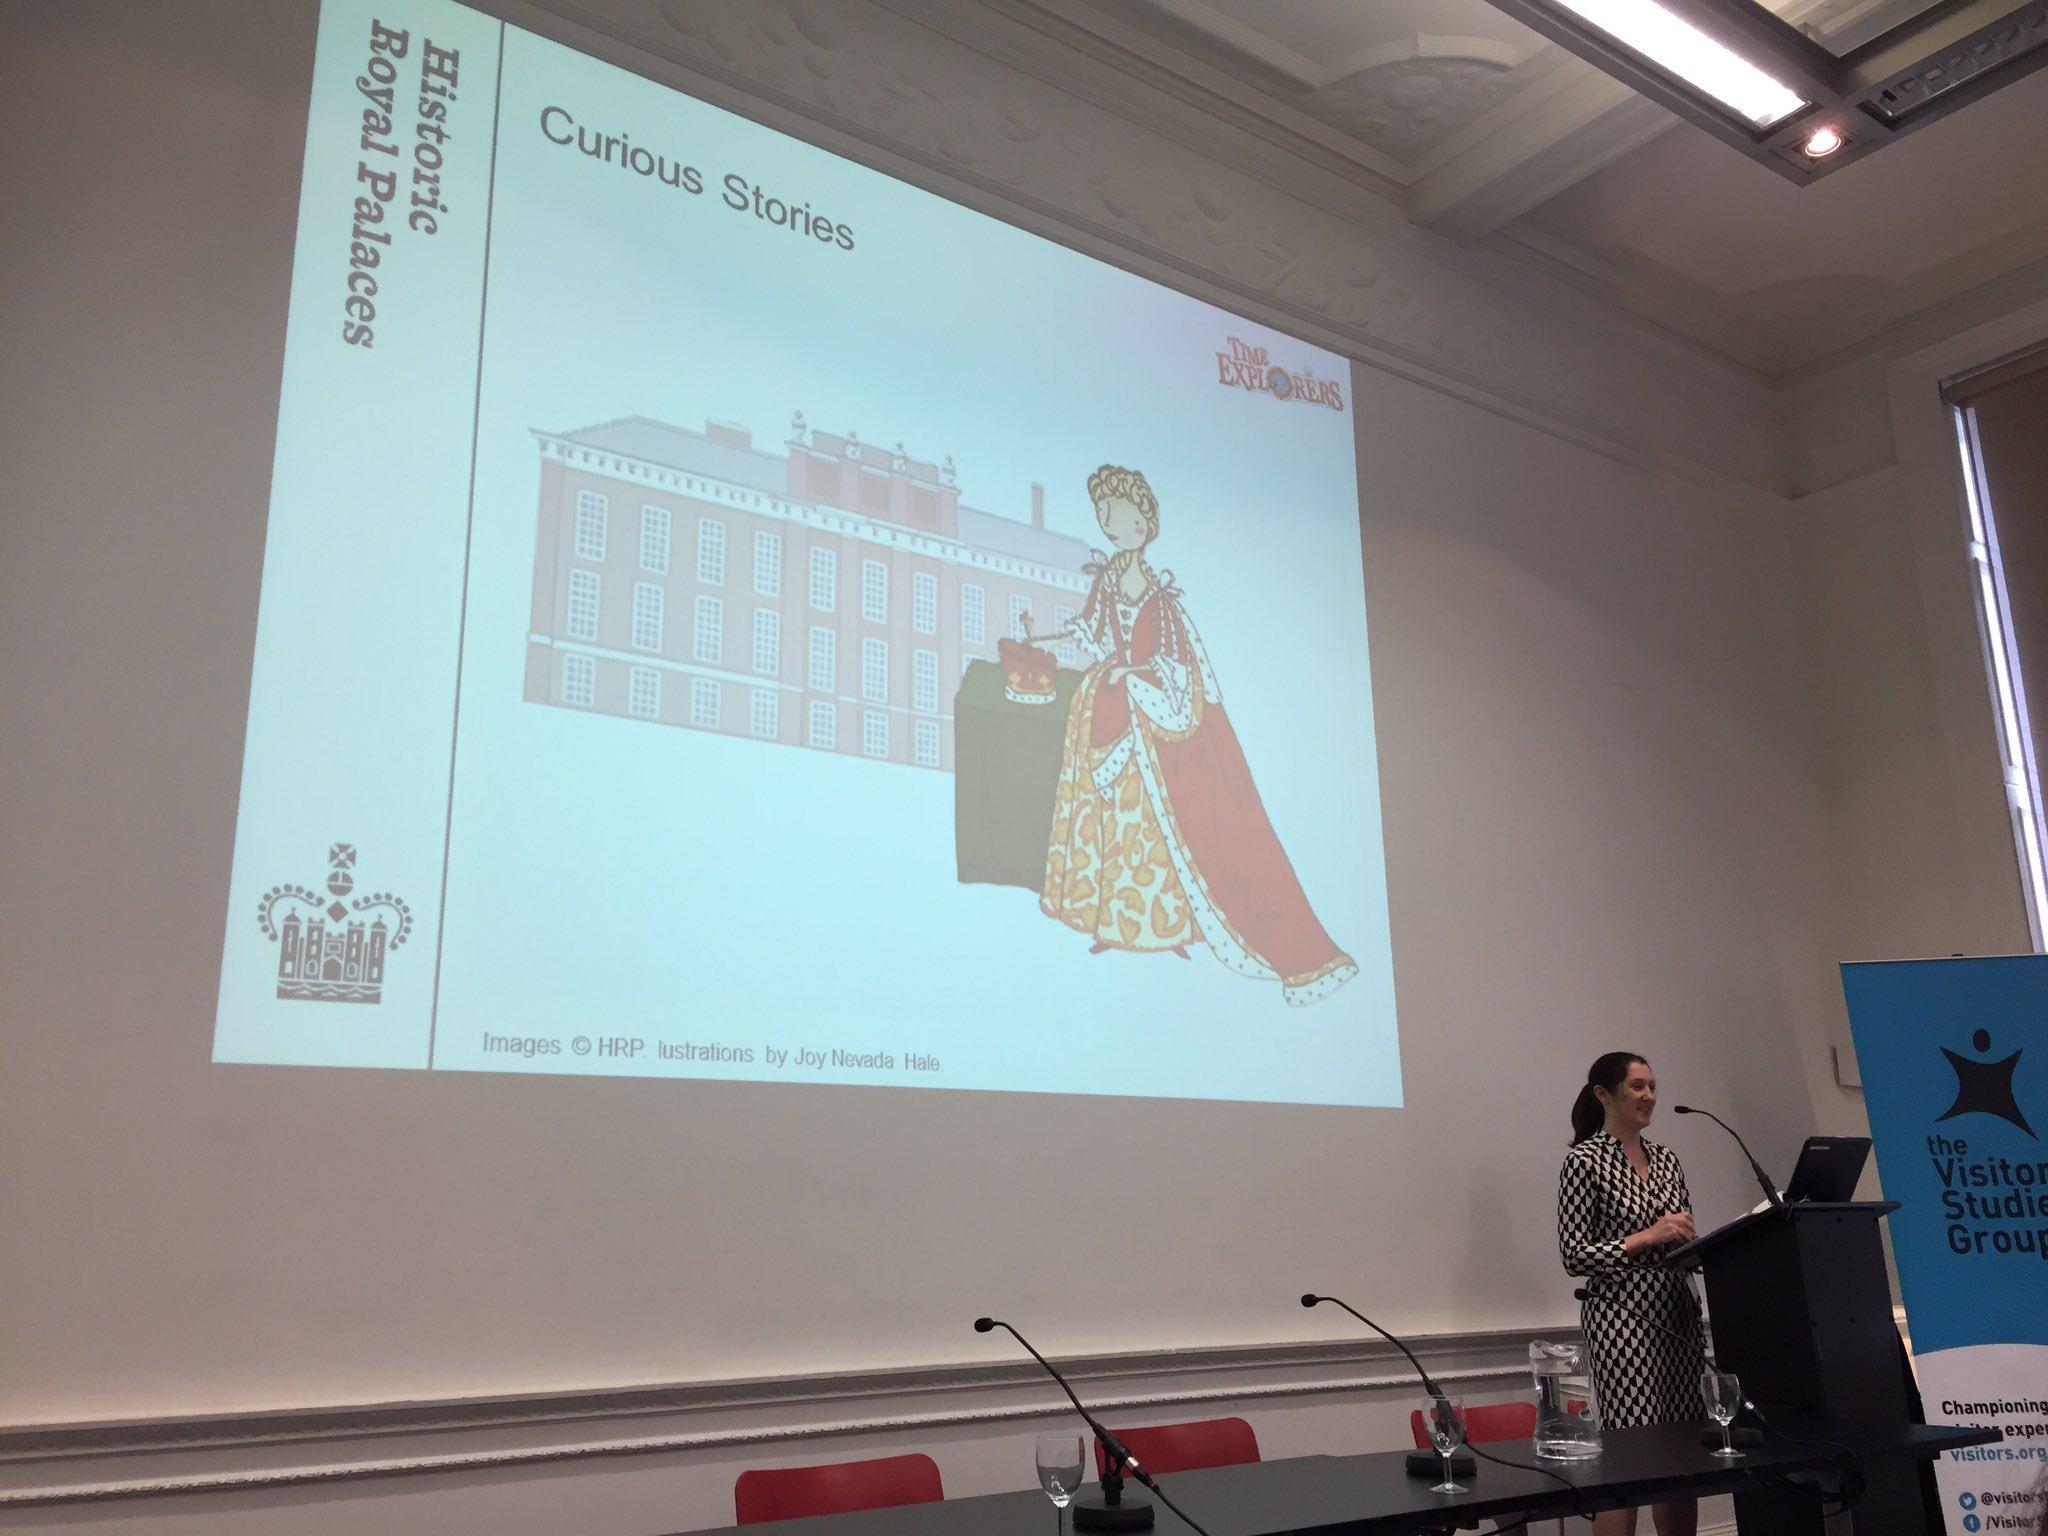 Emma Morioka of @HRP_palaces discusses the evaluation strategy for the Curious Stories project. Love this graphic! #VSGconf17 https://t.co/WF9Arm09NB